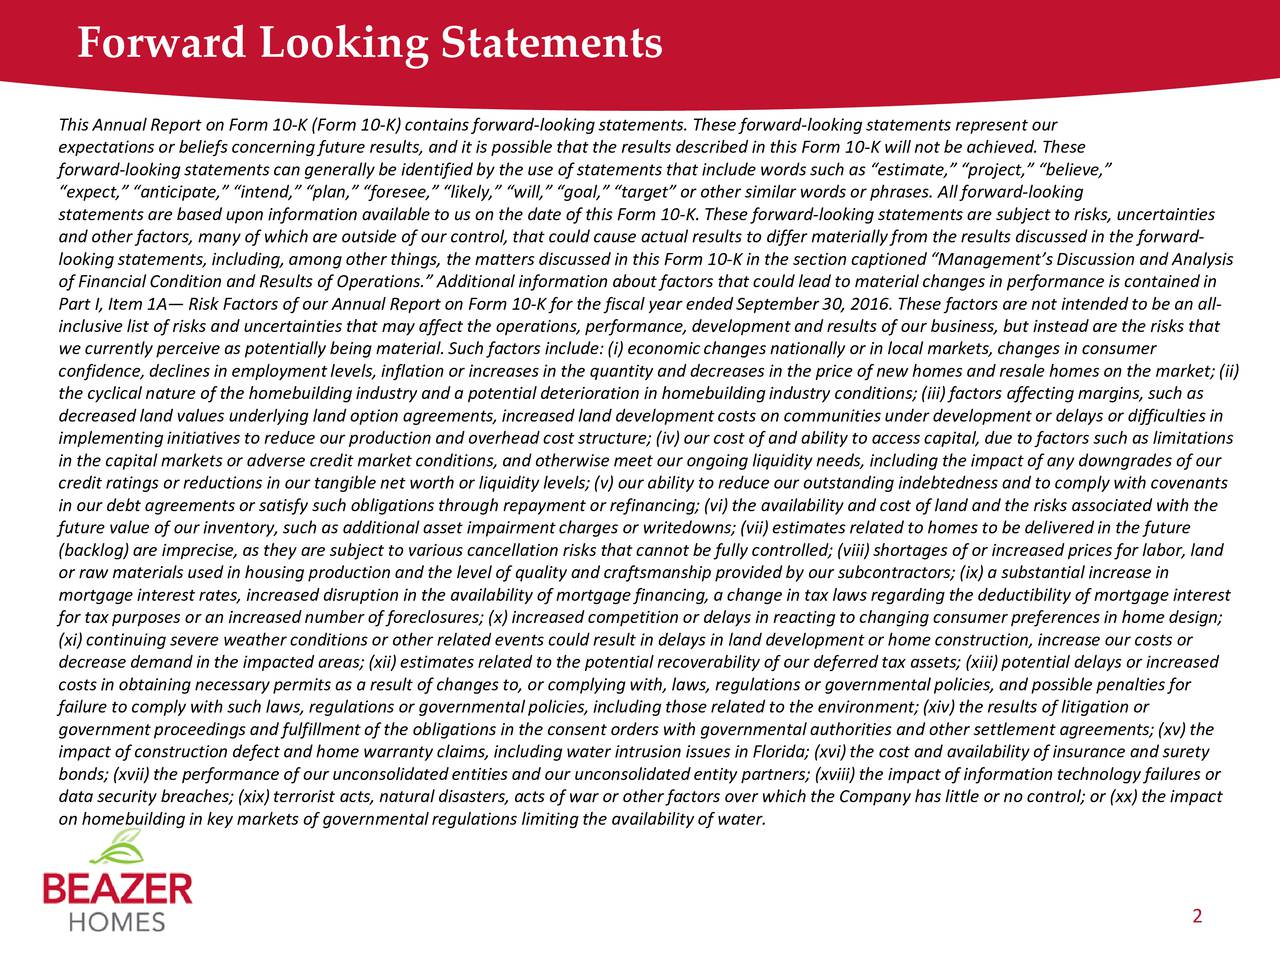 This Annual Report on Form 10-K (Form 10-K) contains forward-looking statements. These forward-looking statements represent our expectations or beliefs concerning future results, and it is possible that the results described in this Form 10-K will not be achieved. These forward-looking statements can generally be identified by the use of statements that include words such as estimate, project, believe, expect, anticipate, intend, plan, foresee, likely, will, goal, target or other similar words or phrasfrward-looking statements are based upon information available to us on the date of this Form 10-K. These forward-looking statements are subject to risks, uncertainties and other factors, many of which are outside of our control, thatcould causeactual results to differ materially from the results discussed in the forward- looking statements, including, among other things,the matters discussed in this Form10-K in the section captioned Managements Discussionand Analysis of Financial Condition andResults of Operations. Additional information about factors that could lead to material changes in performance is contained in Part I, Item 1A Risk Factors of our Annual Report on Form 10-K for the fiscal year ended September 30,2016. These factors are not intended to be anall- inclusive listof risks and uncertainties that may affect the operations, performance, development and results of our business, butinstead are the risks that we currently perceive as potentially being material. Such factors include: (i) economicchanges nationally or in local markets, changes in consumer confidence, declines in employment levels, inflationor increases in the quantity and decreases in the price of new homes and resale homes on the marke; (ii) the cyclical nature of the homebuilding industry and a potential deterioration in homebuilding industry conditions; (iii) factorsaffecting margins, such as decreased land values underlying land option agreements, increased land development costson commun